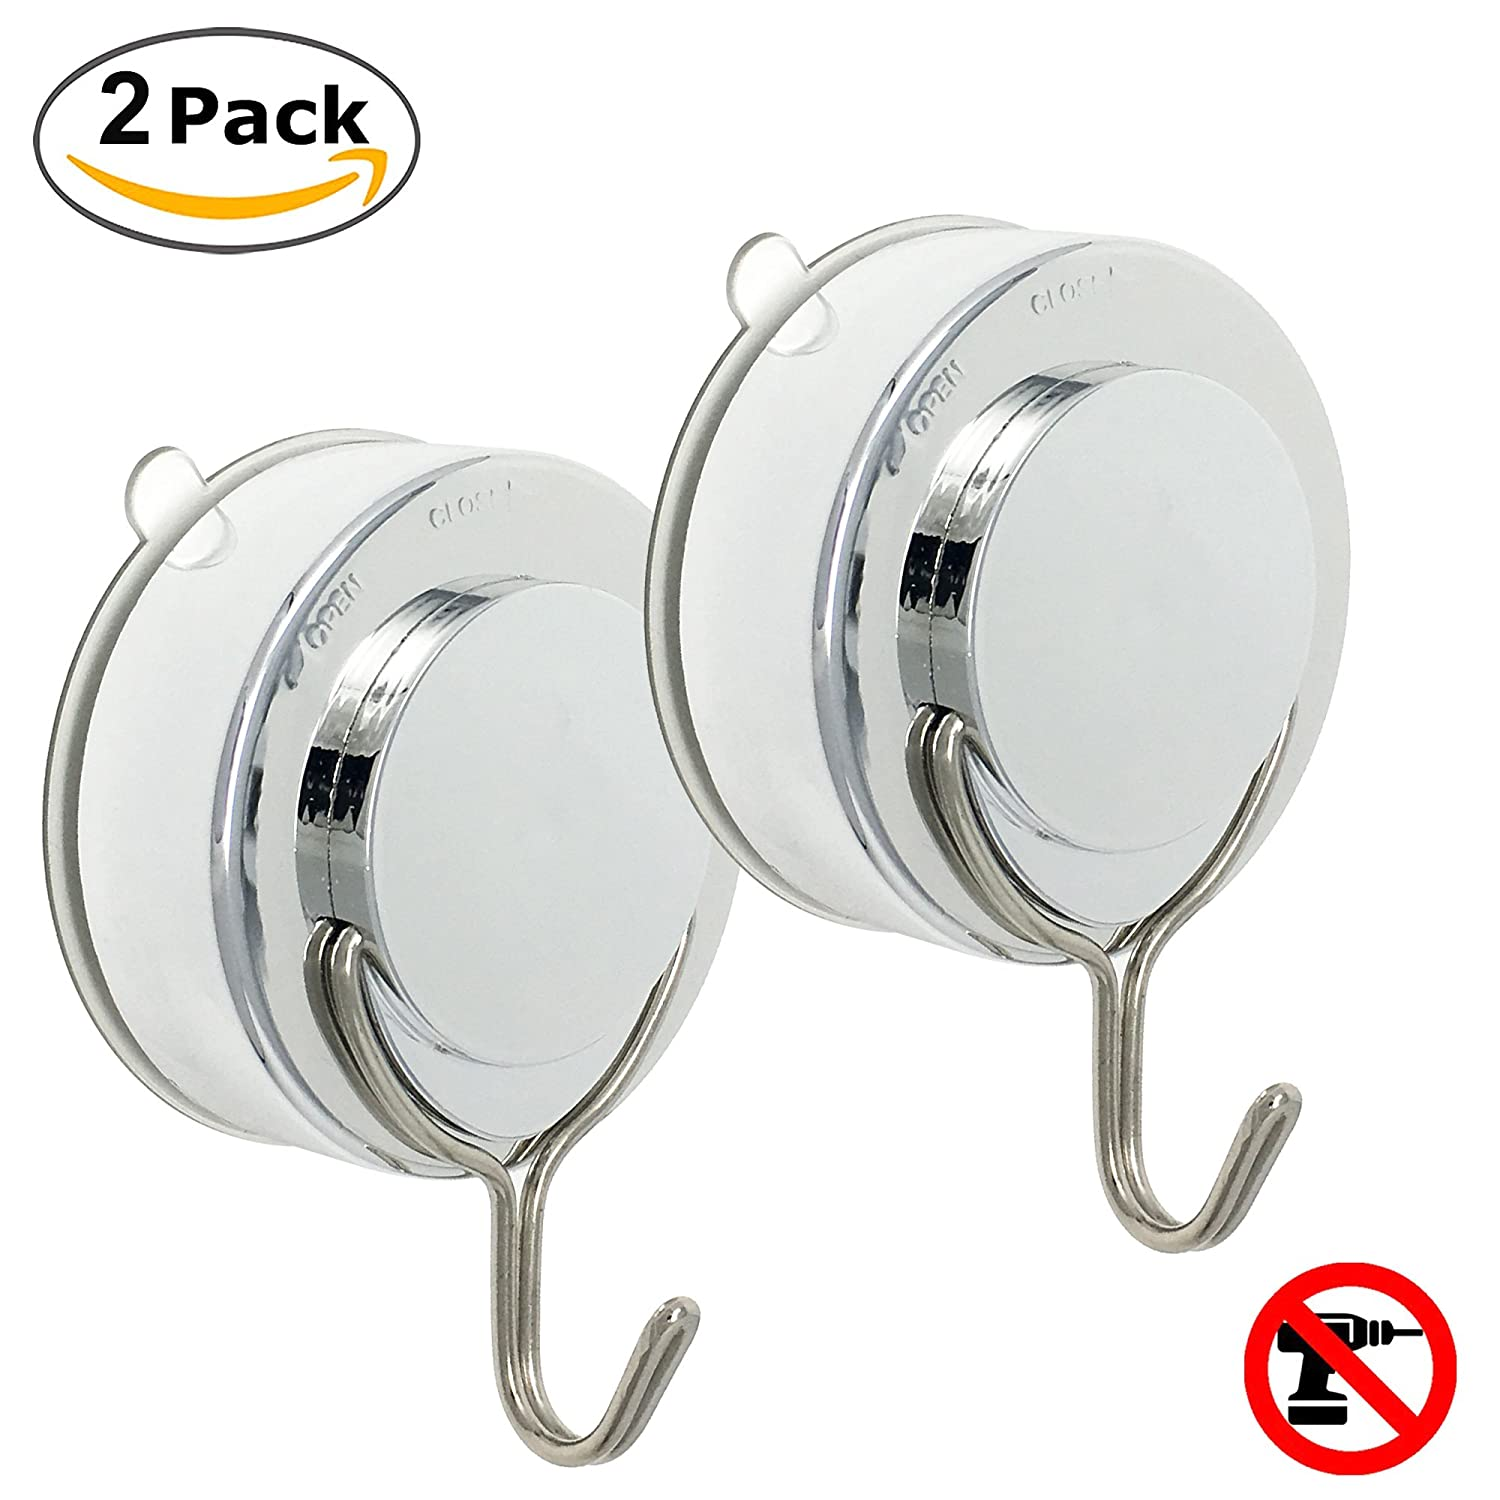 Super Powerful Vacuum Suction Cup Hook Holder - Organizer for Towel, Bathrobe and Loofah,Chrome fibound